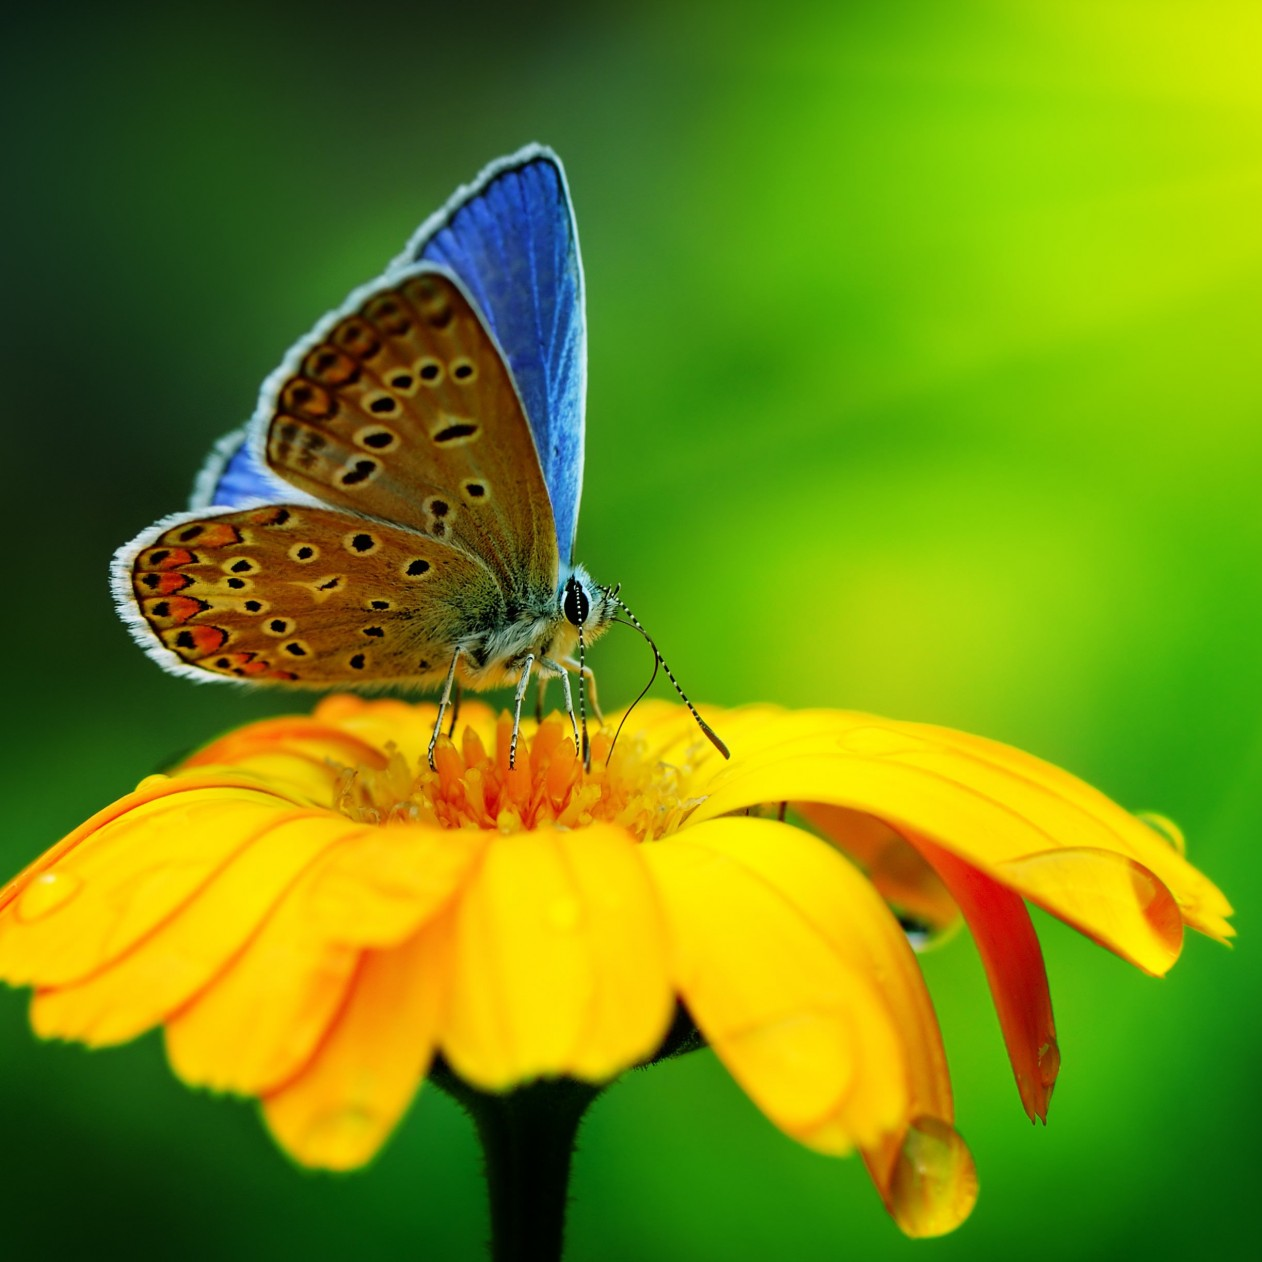 Butterfly Collecting Pollen Wallpaper for Apple iPad mini